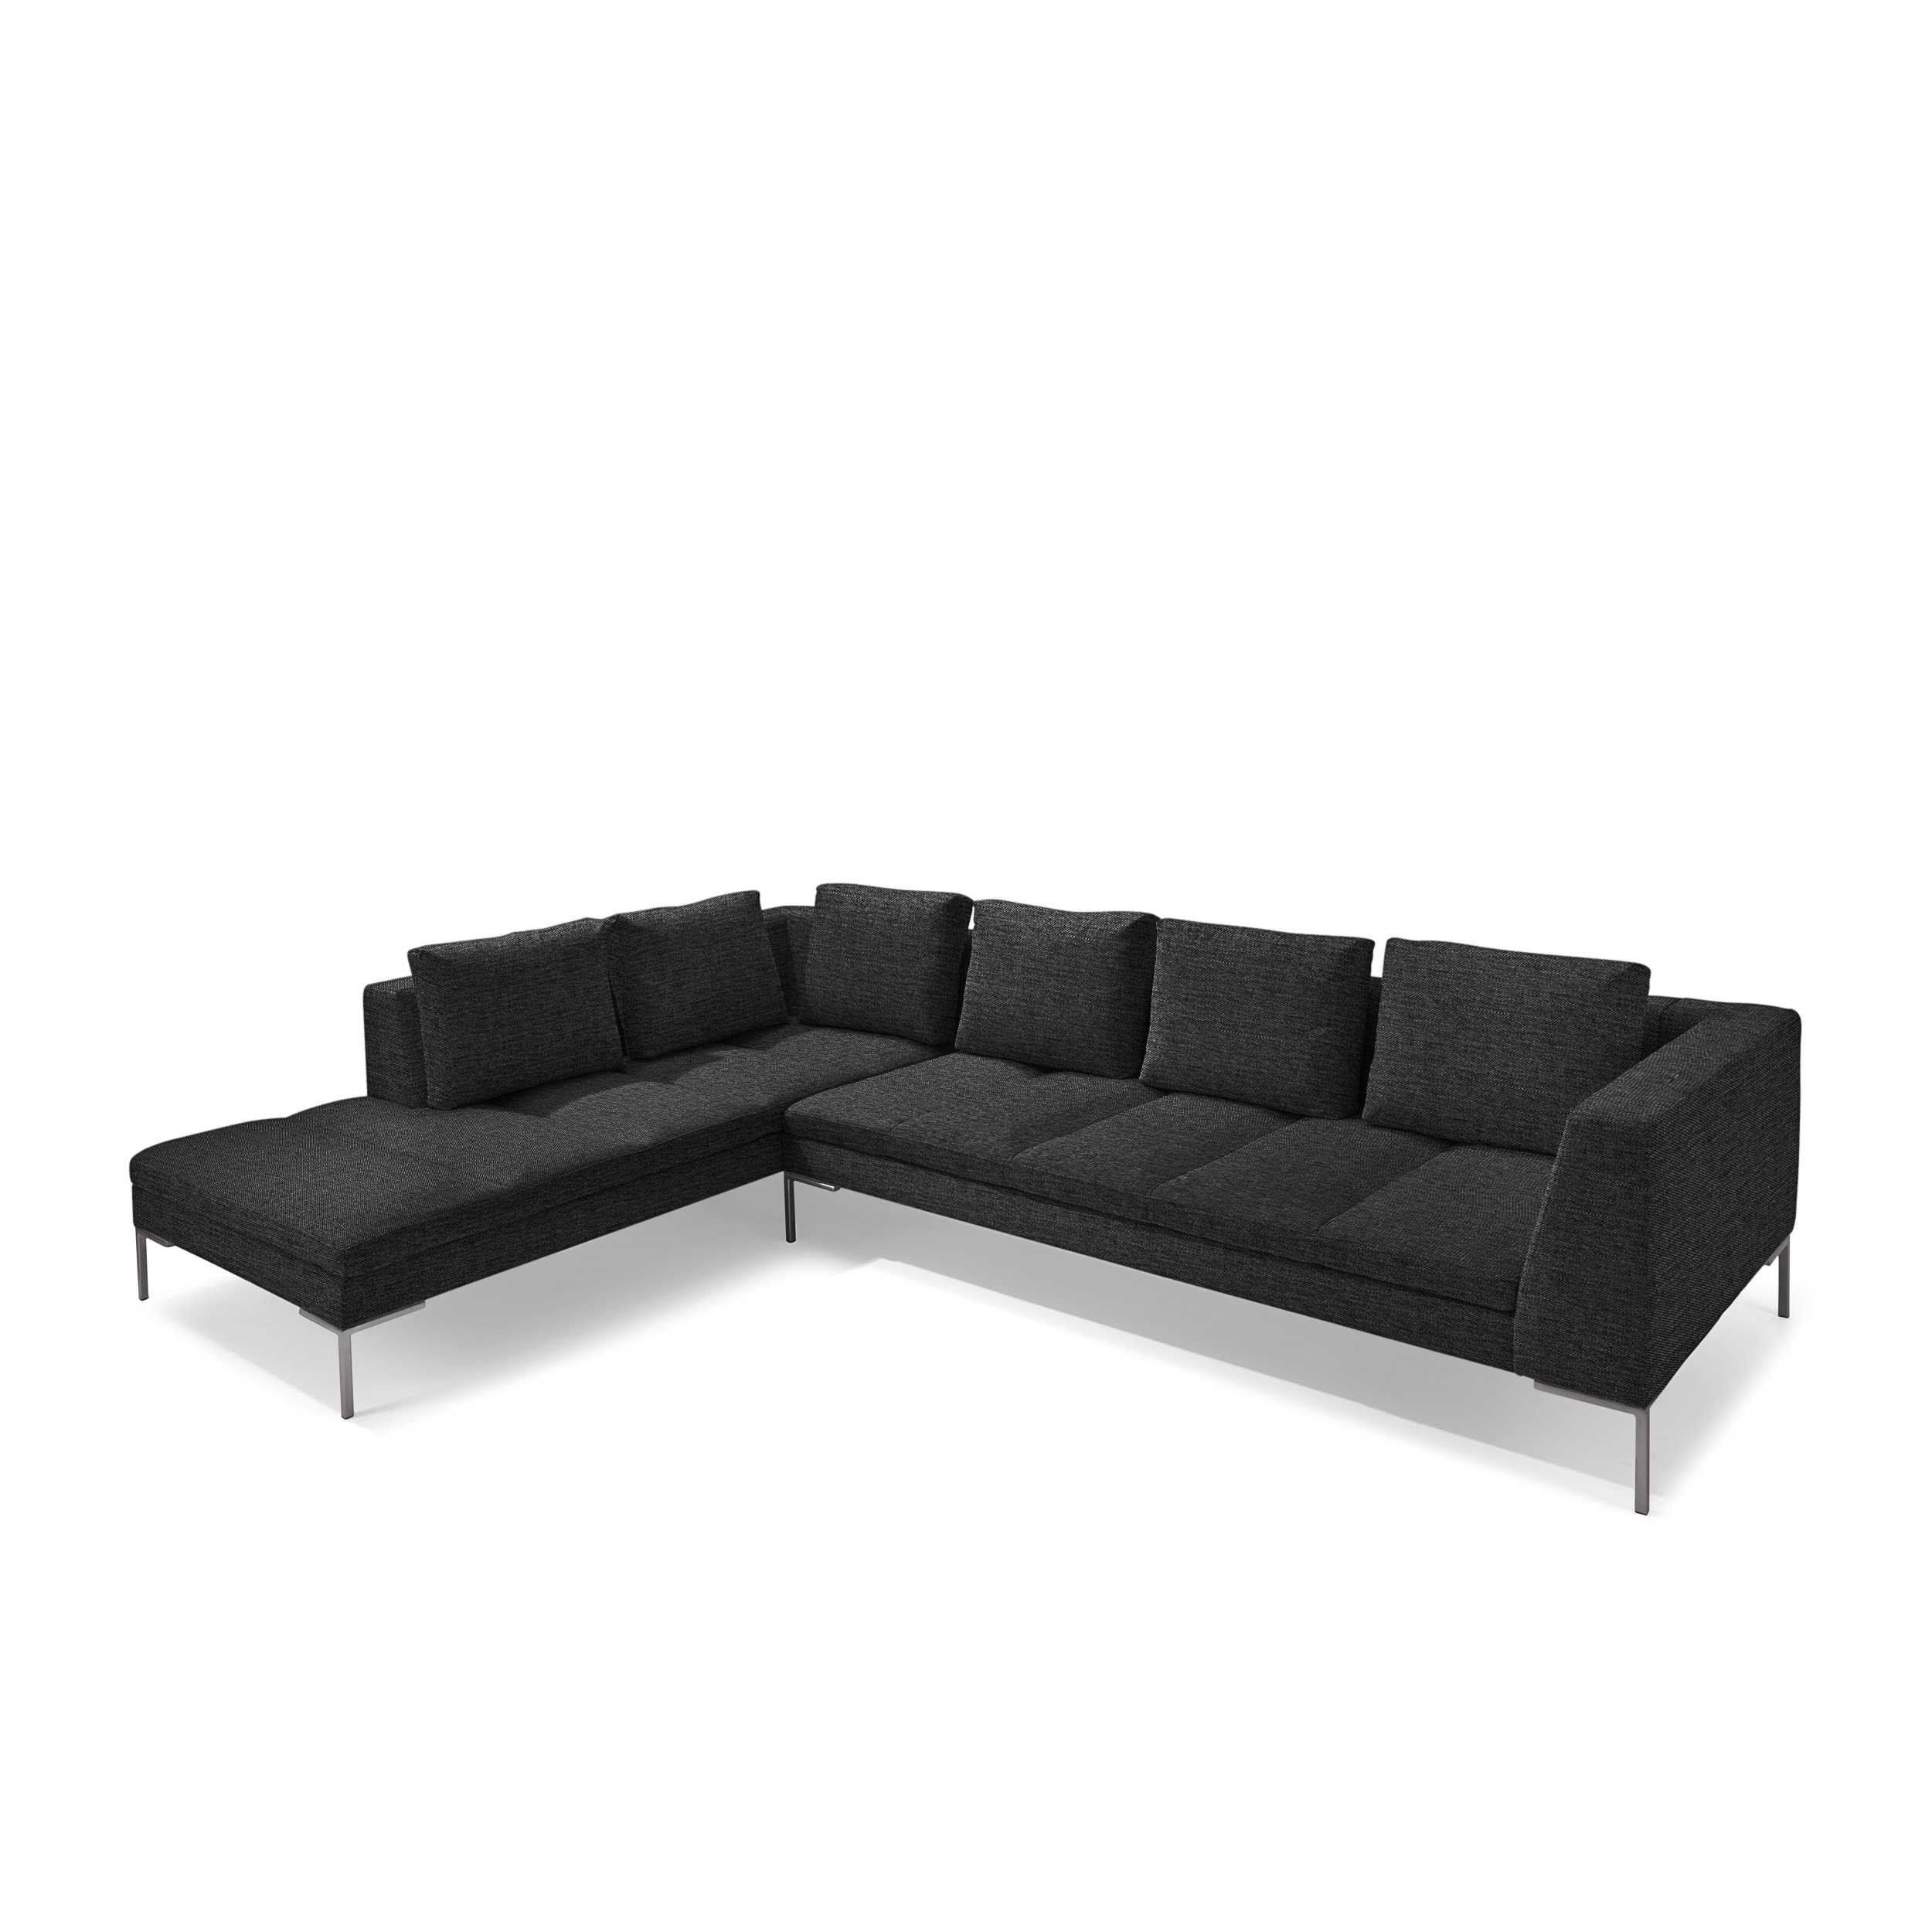 Prachtig Sofa Mit Schlaffunktion Otto Check More At Https